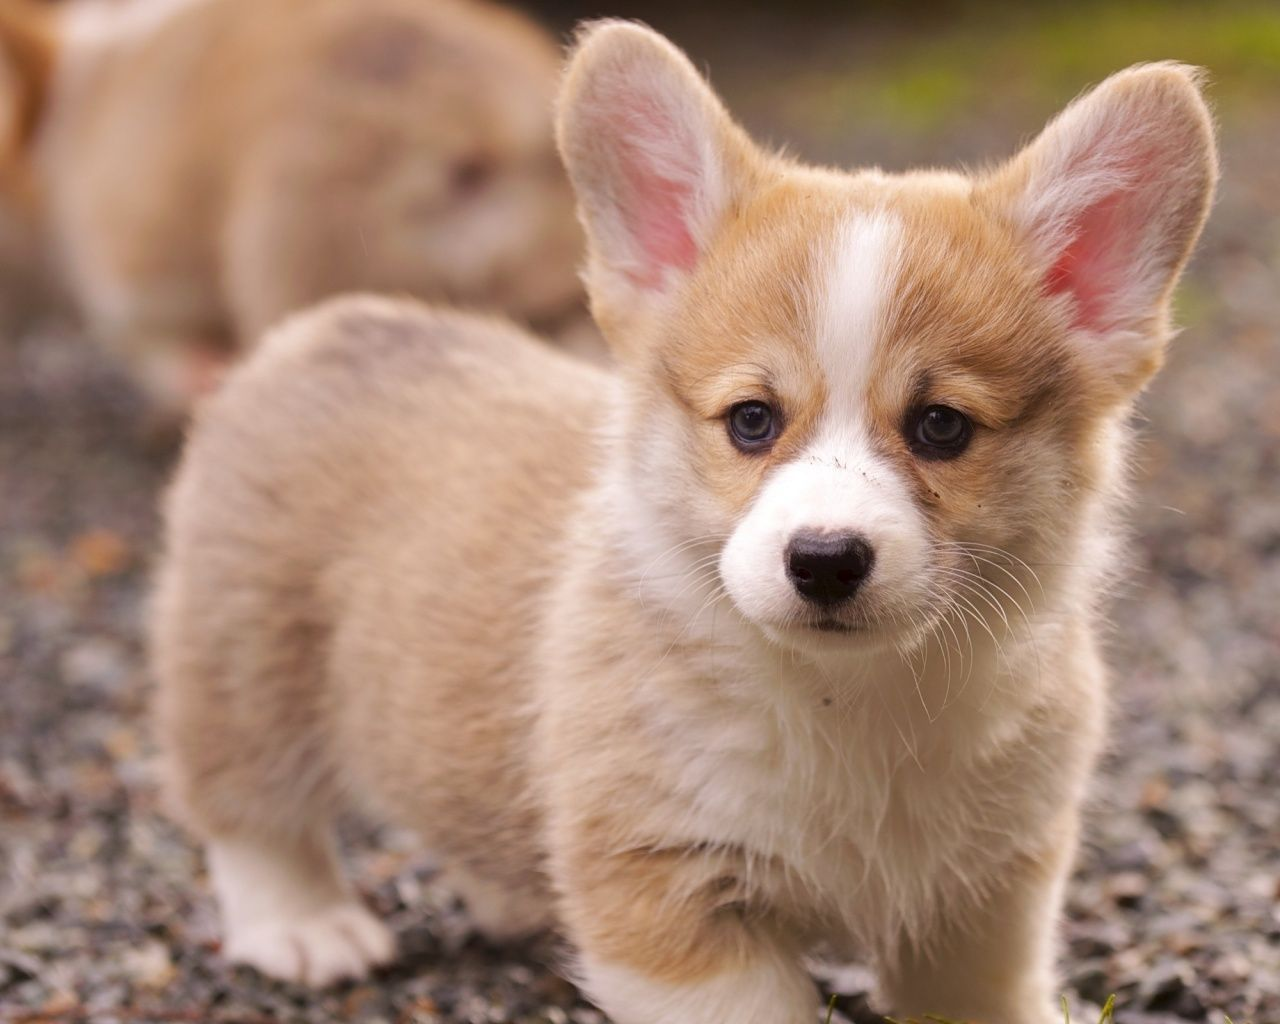 Dogs and puppies simple tricks and tips for being a great dog